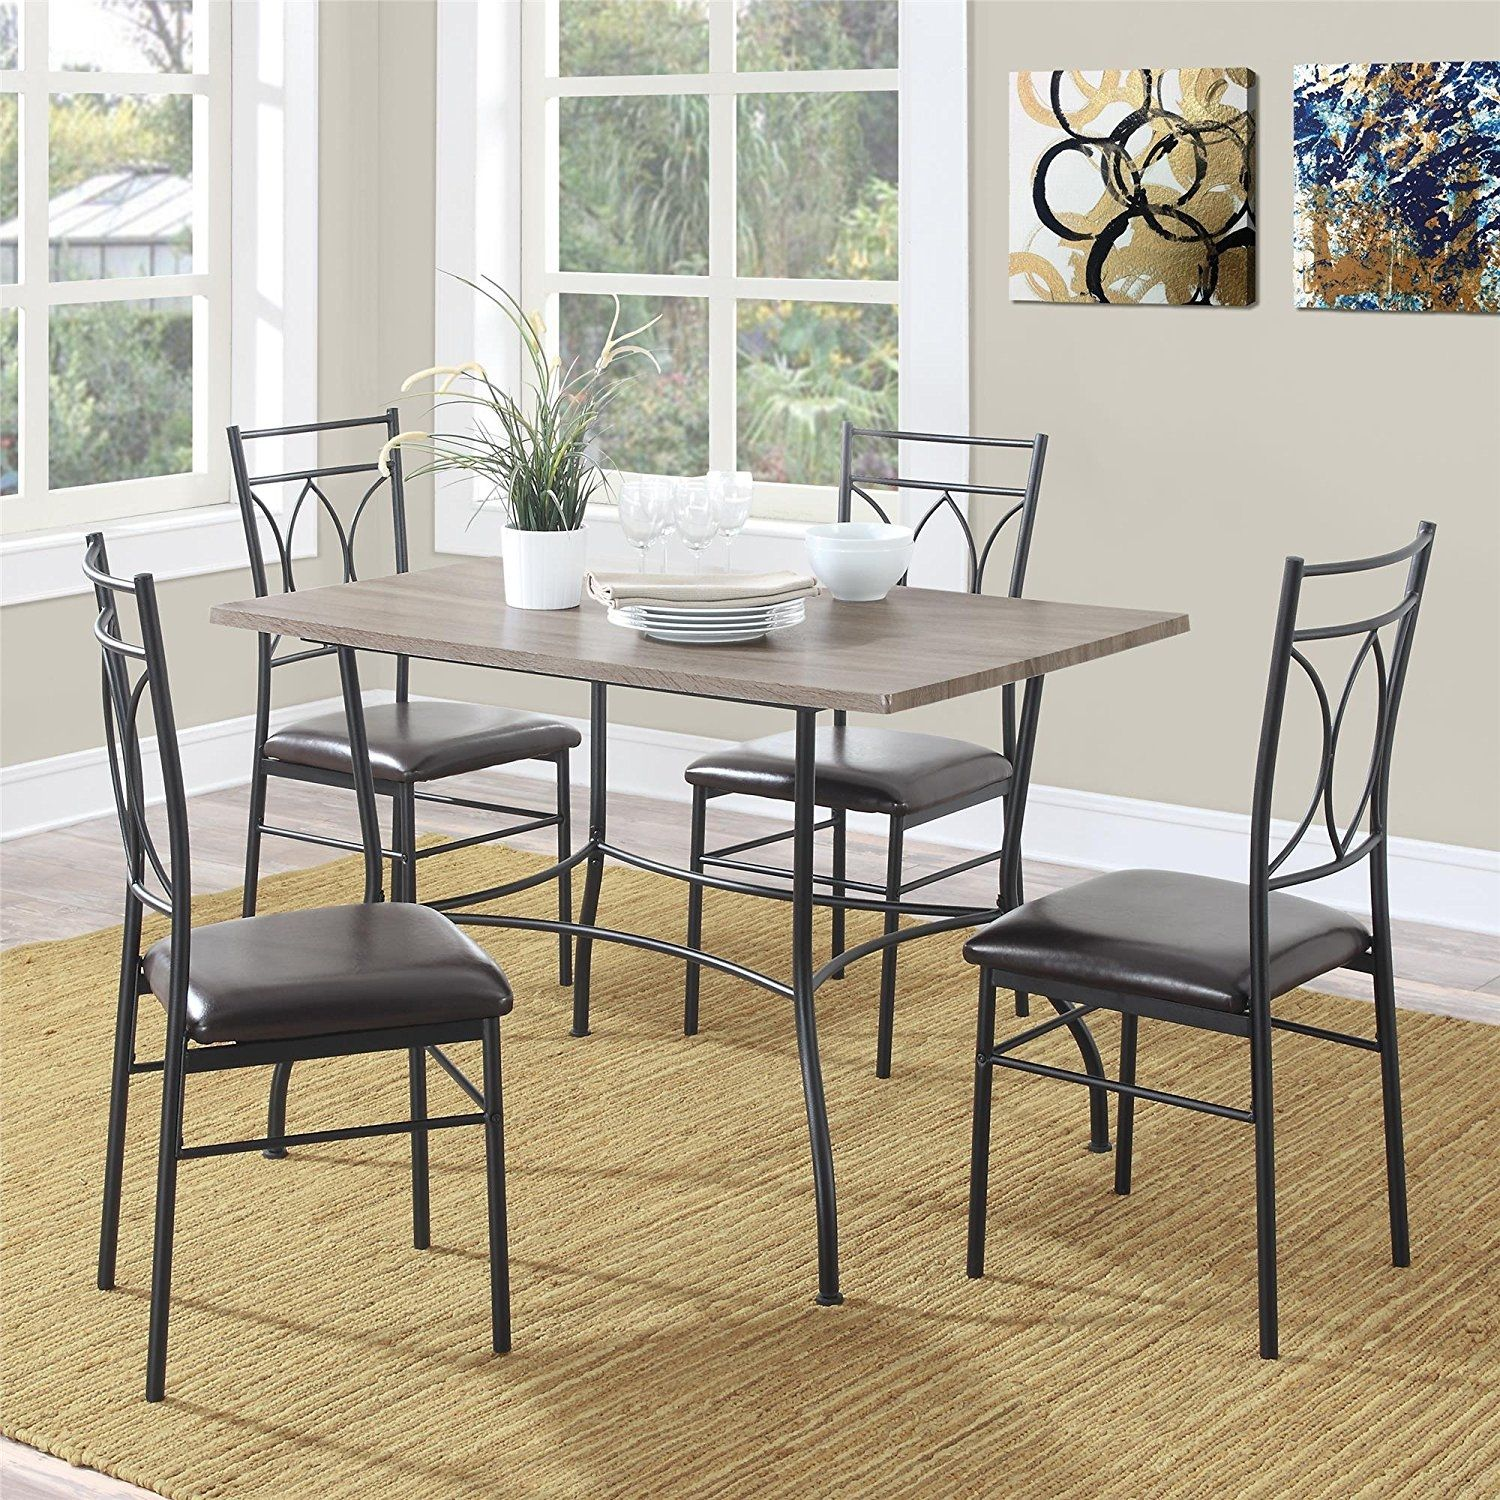 5 Piece Dining Table Set Under 200 Metal Dining Set Cheap